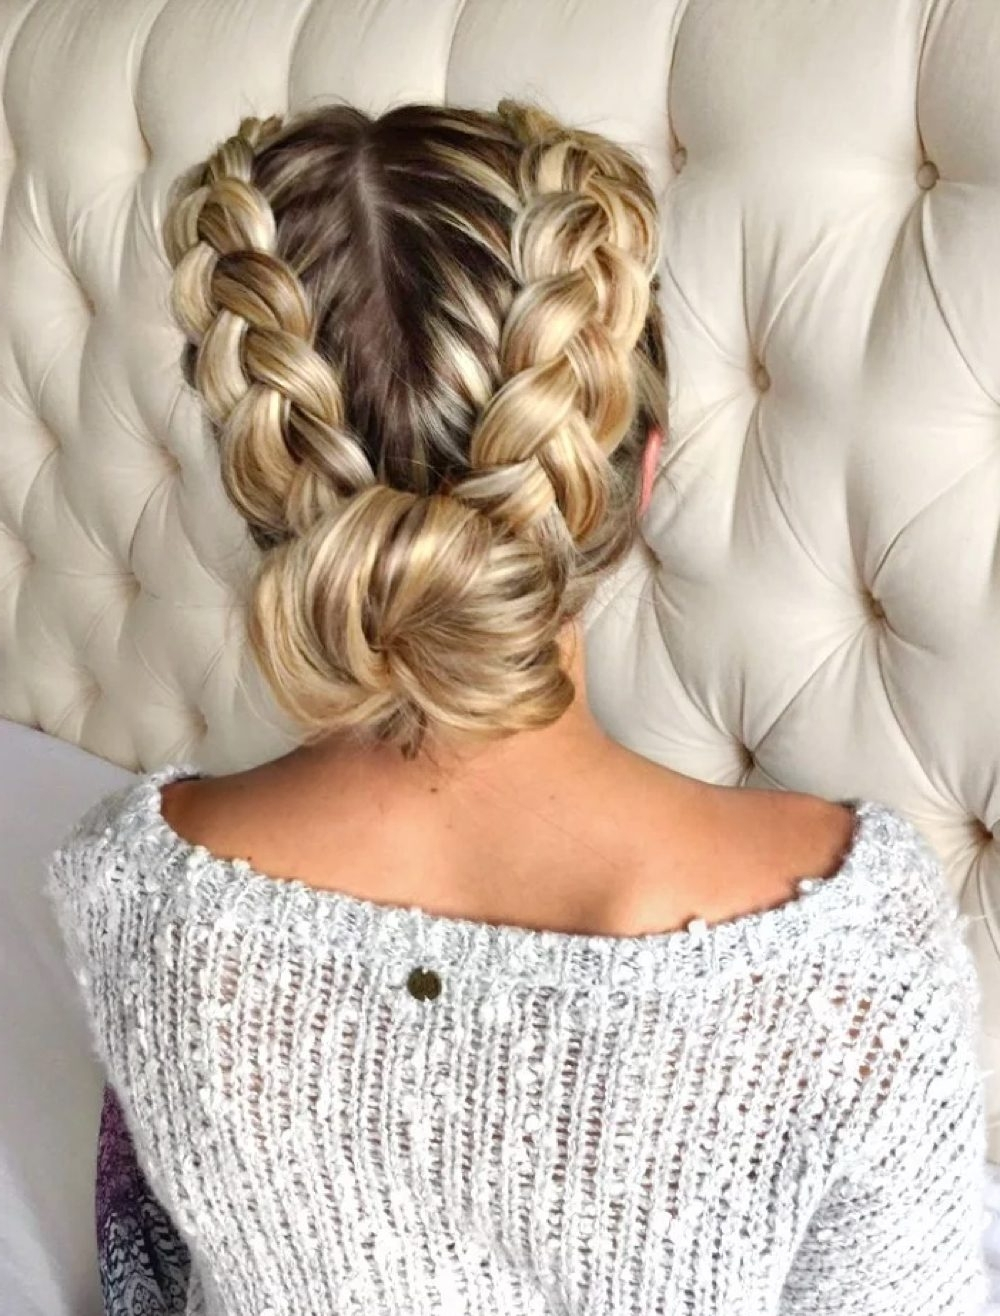 2017 Messy Double Braid Hairstyles Pertaining To 28 Gorgeous Braided Updo Ideas For (View 9 of 15)